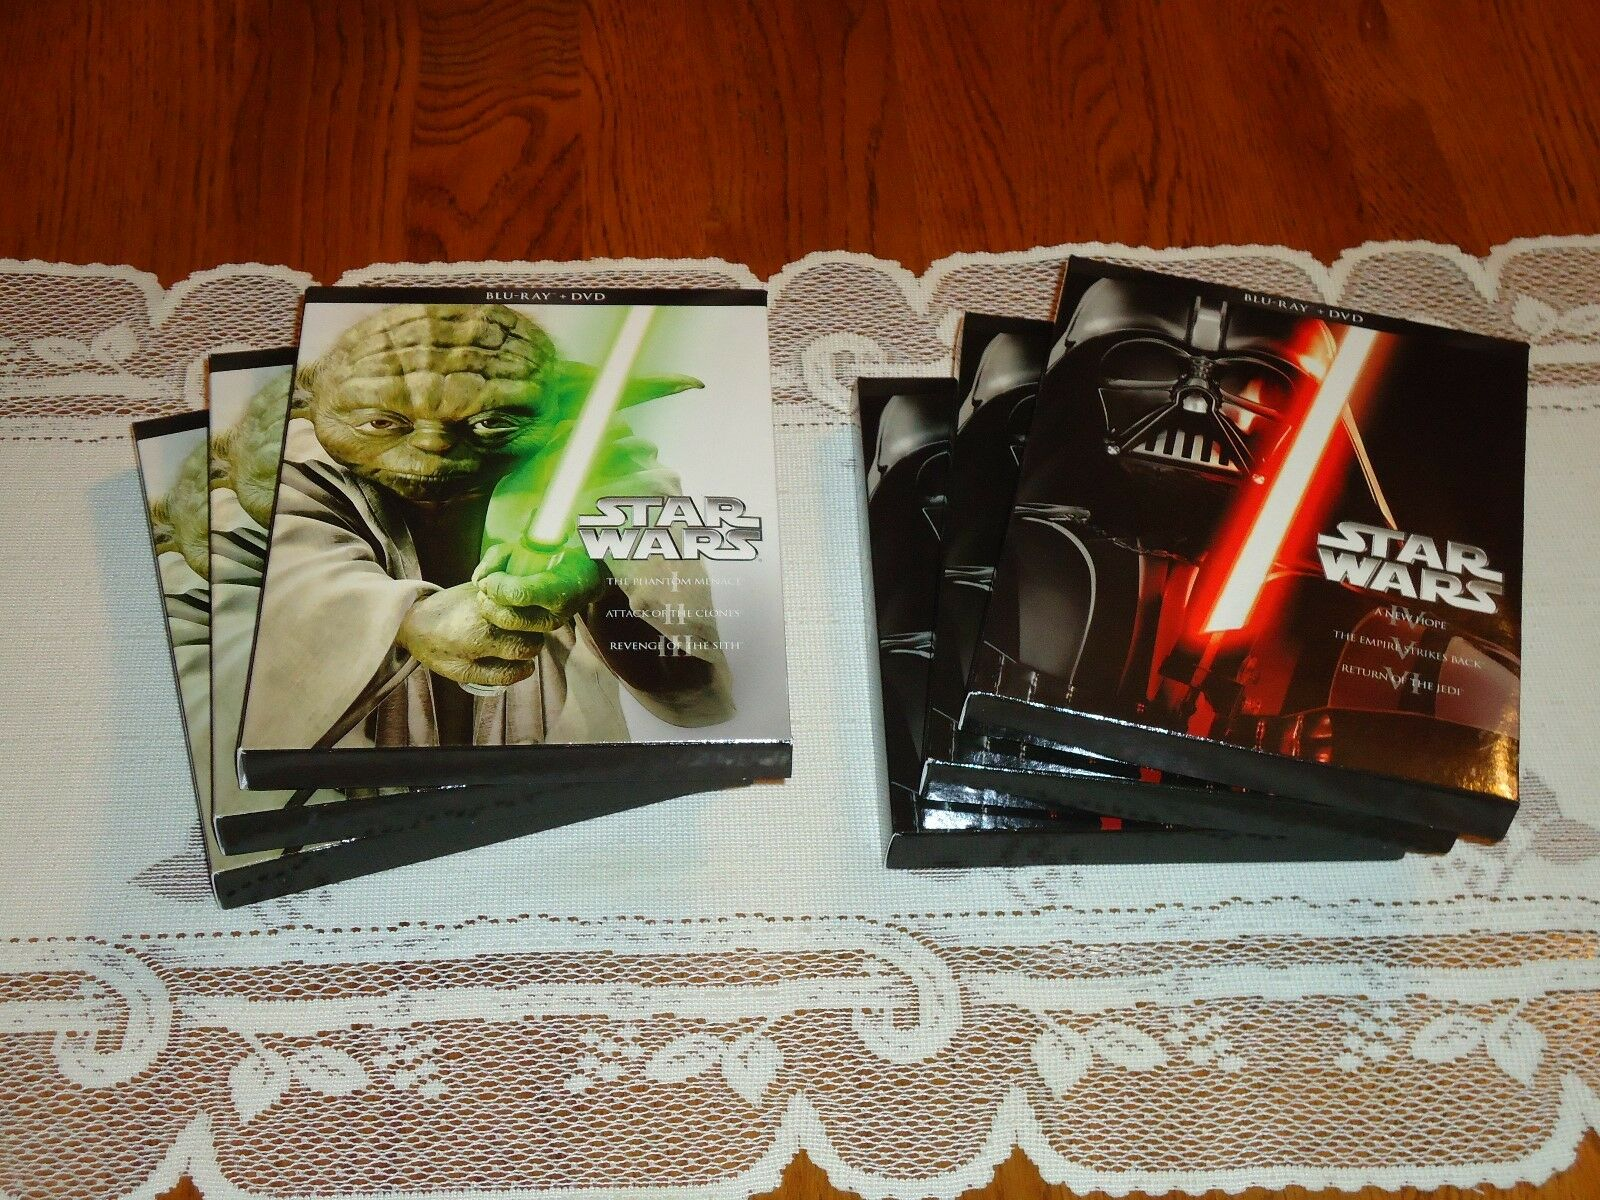 14 Star Wars Slipcovers, perfect STEELBOOK Case protectors